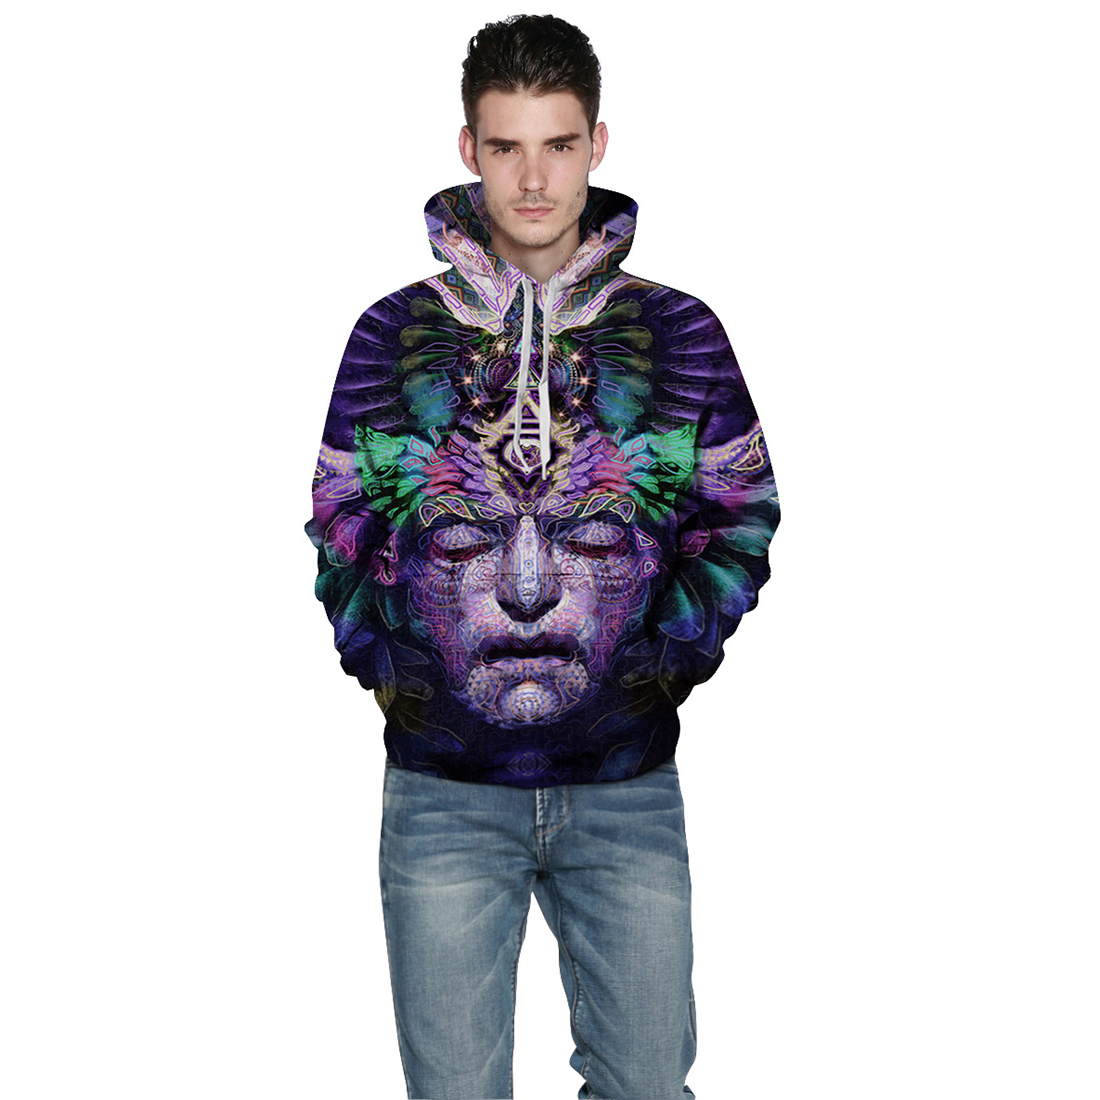 Men/Women New Fashion Hooded Hoodies With Pocket 3d Dreamlike Face Print Sweatshirt Pullover Hoody Tracksuits